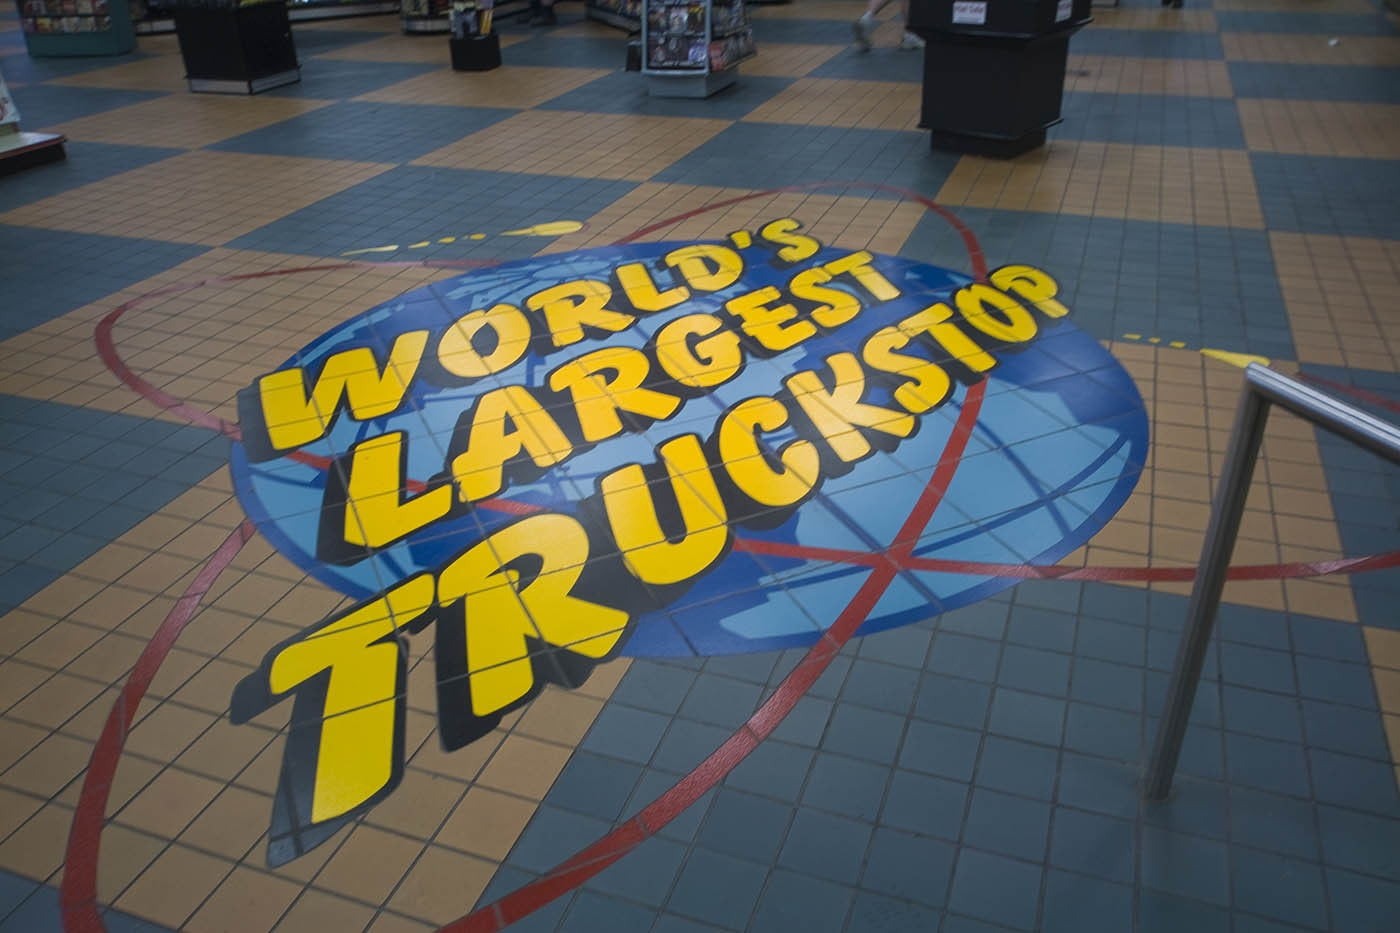 World's Largest Truck Stop in Walcott, Iowa. Labor Day Chicago to Mount Rushmore Road Trip.